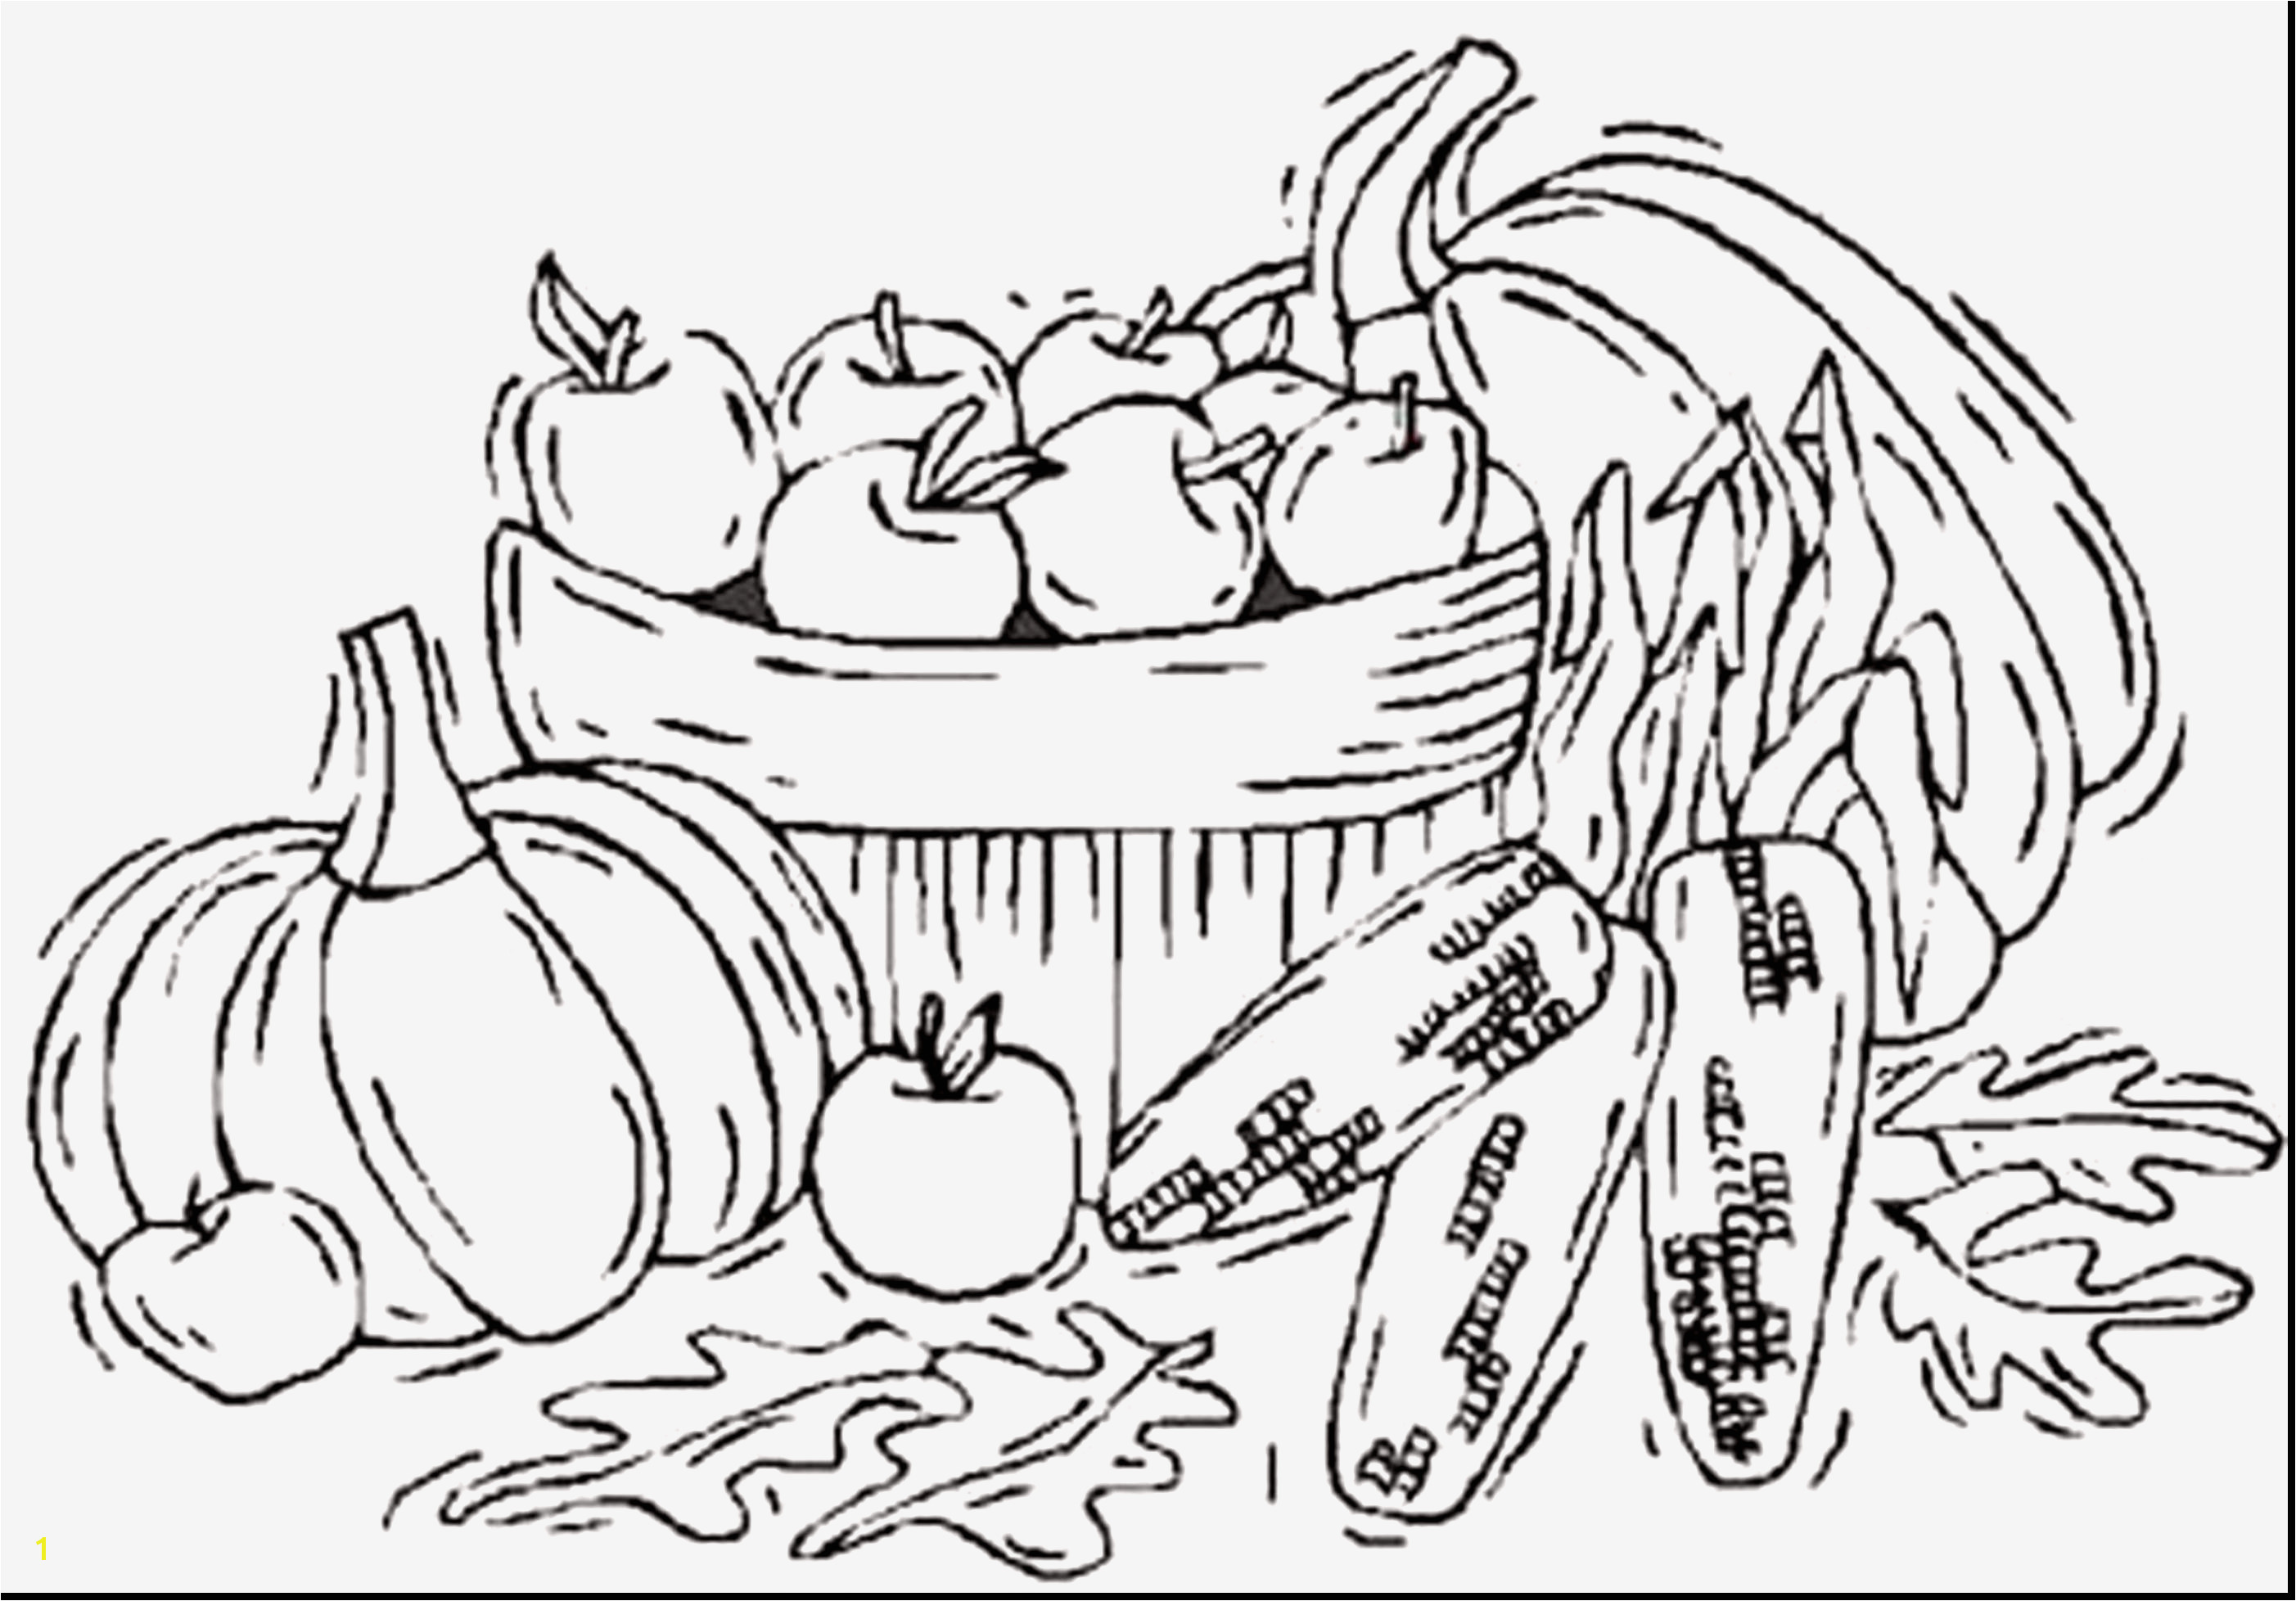 Coloring Pages Printing Winter Adult Coloring Pages Printable Color Pages for Adults Awesome Fall Coloring